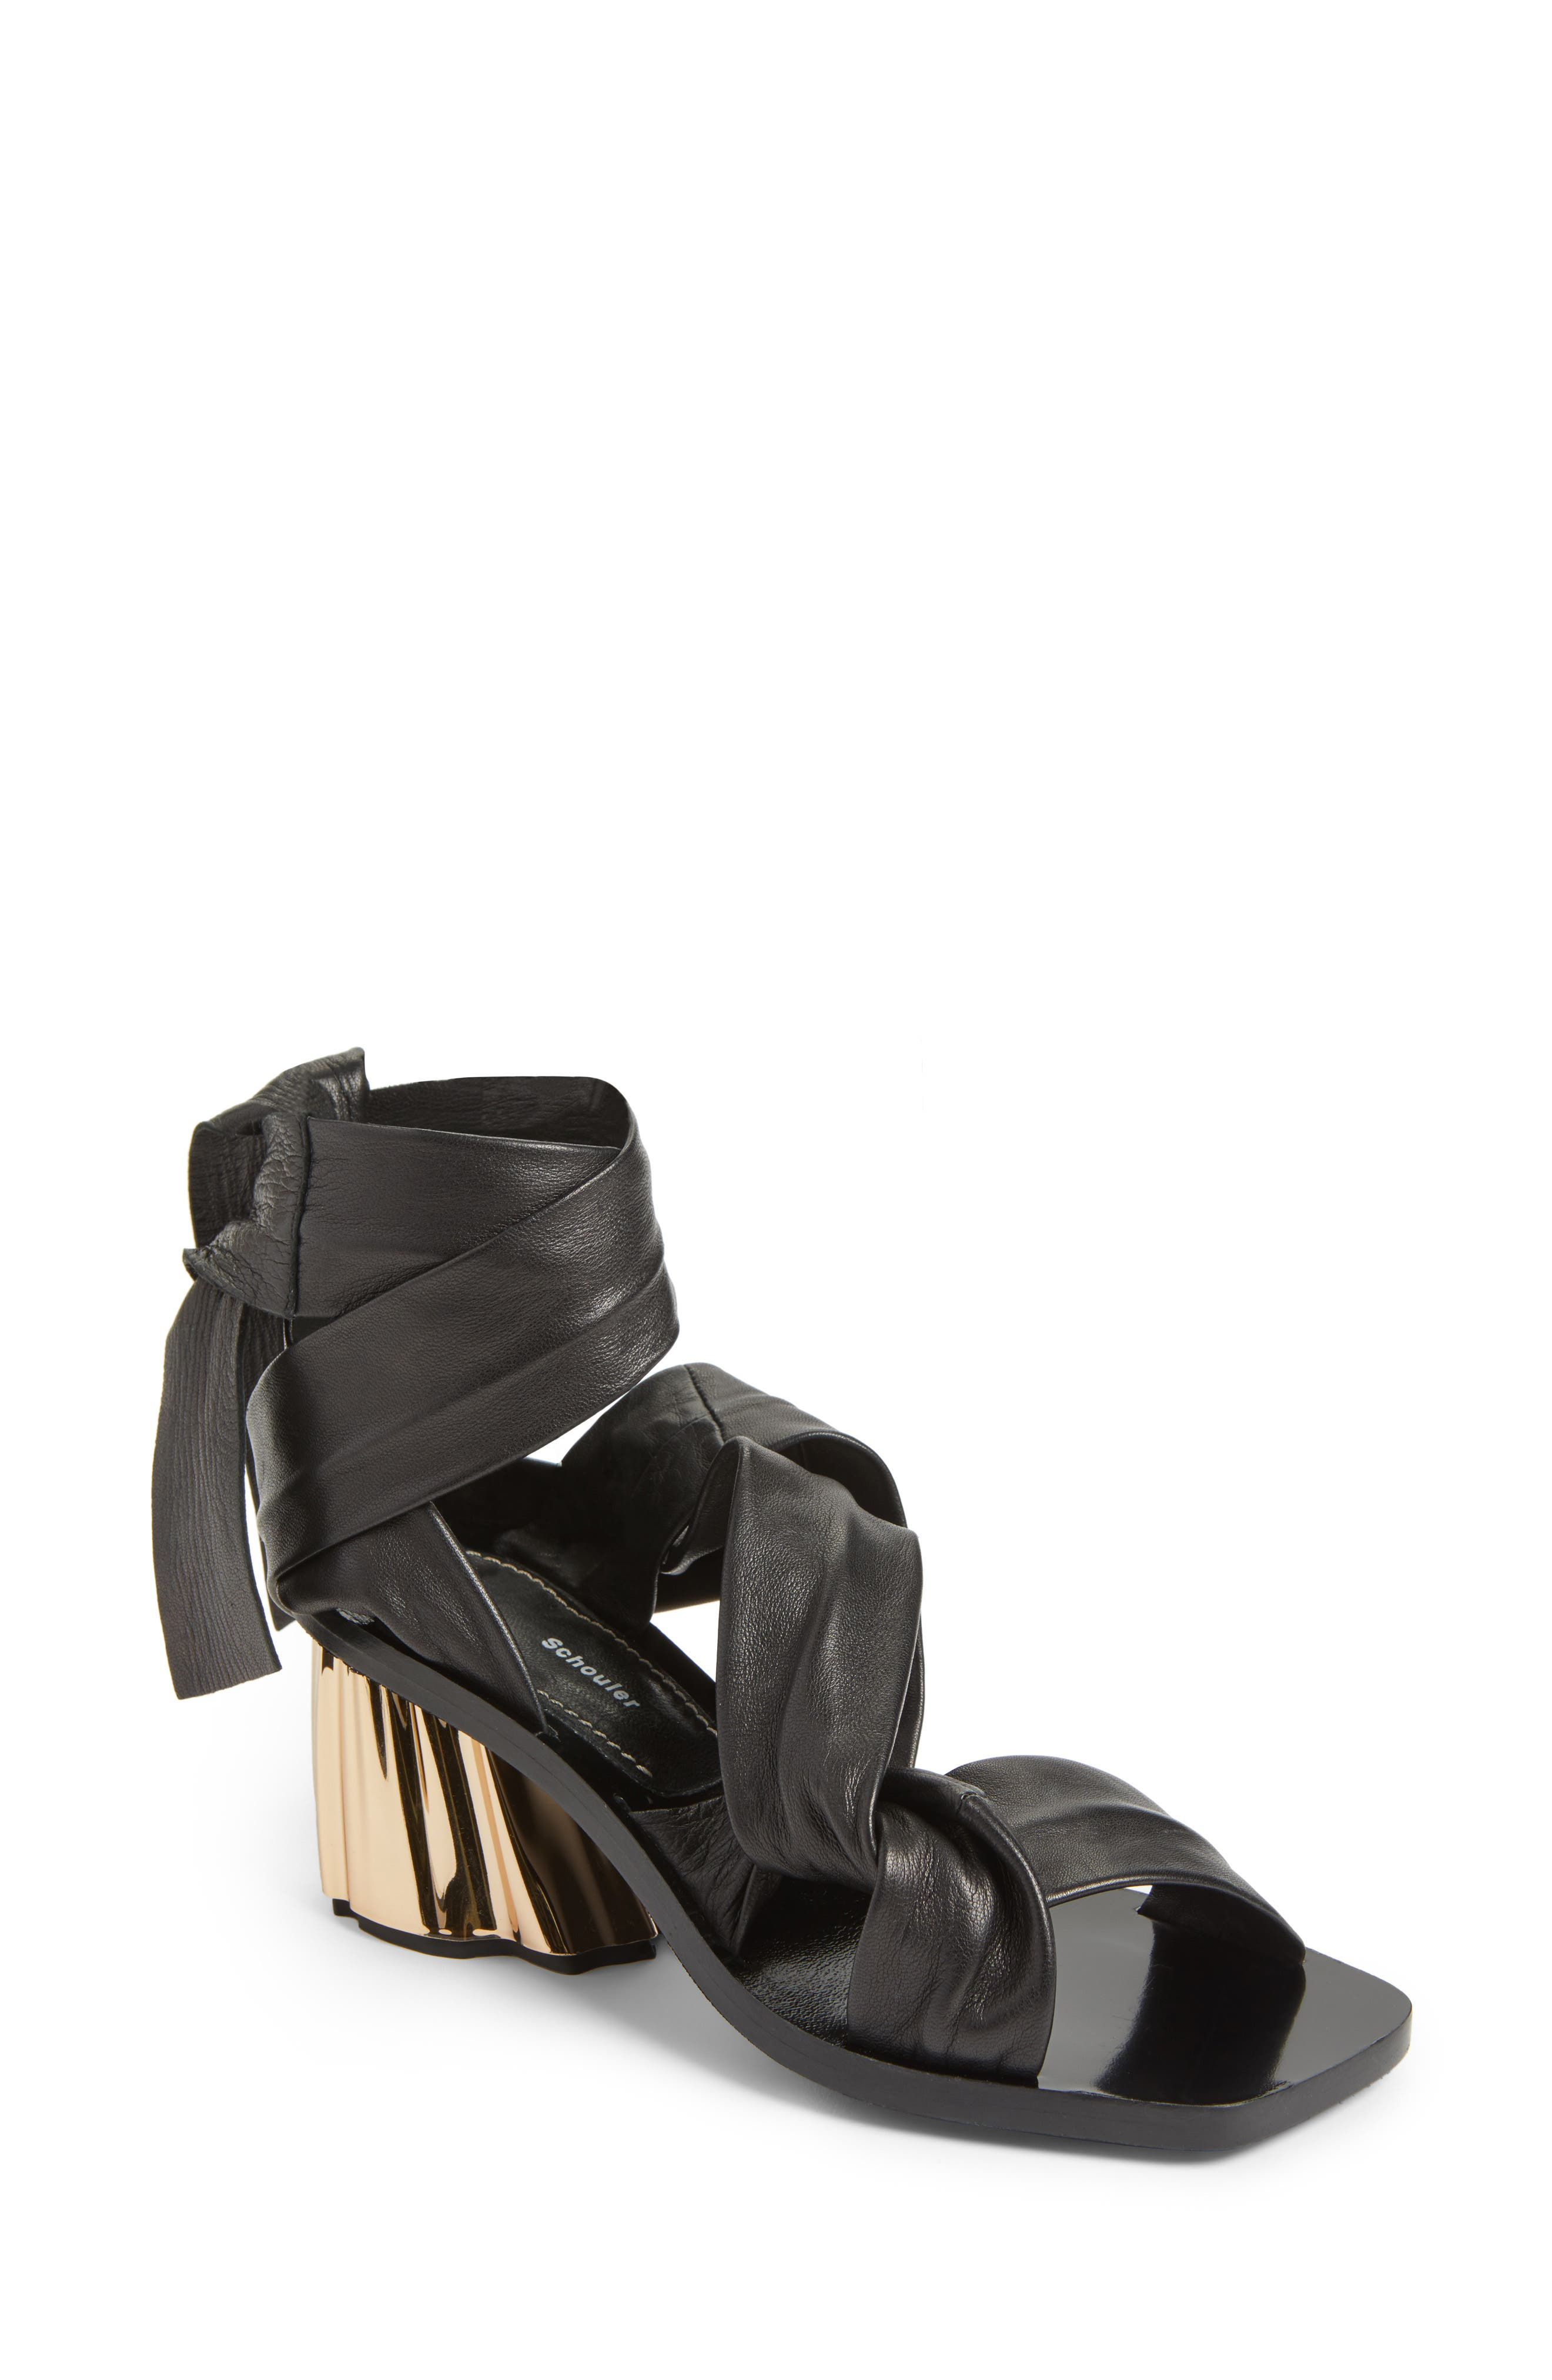 Alternate Image 1 Selected - Proenza Schouler Ankle Wrap Sandal (Women)